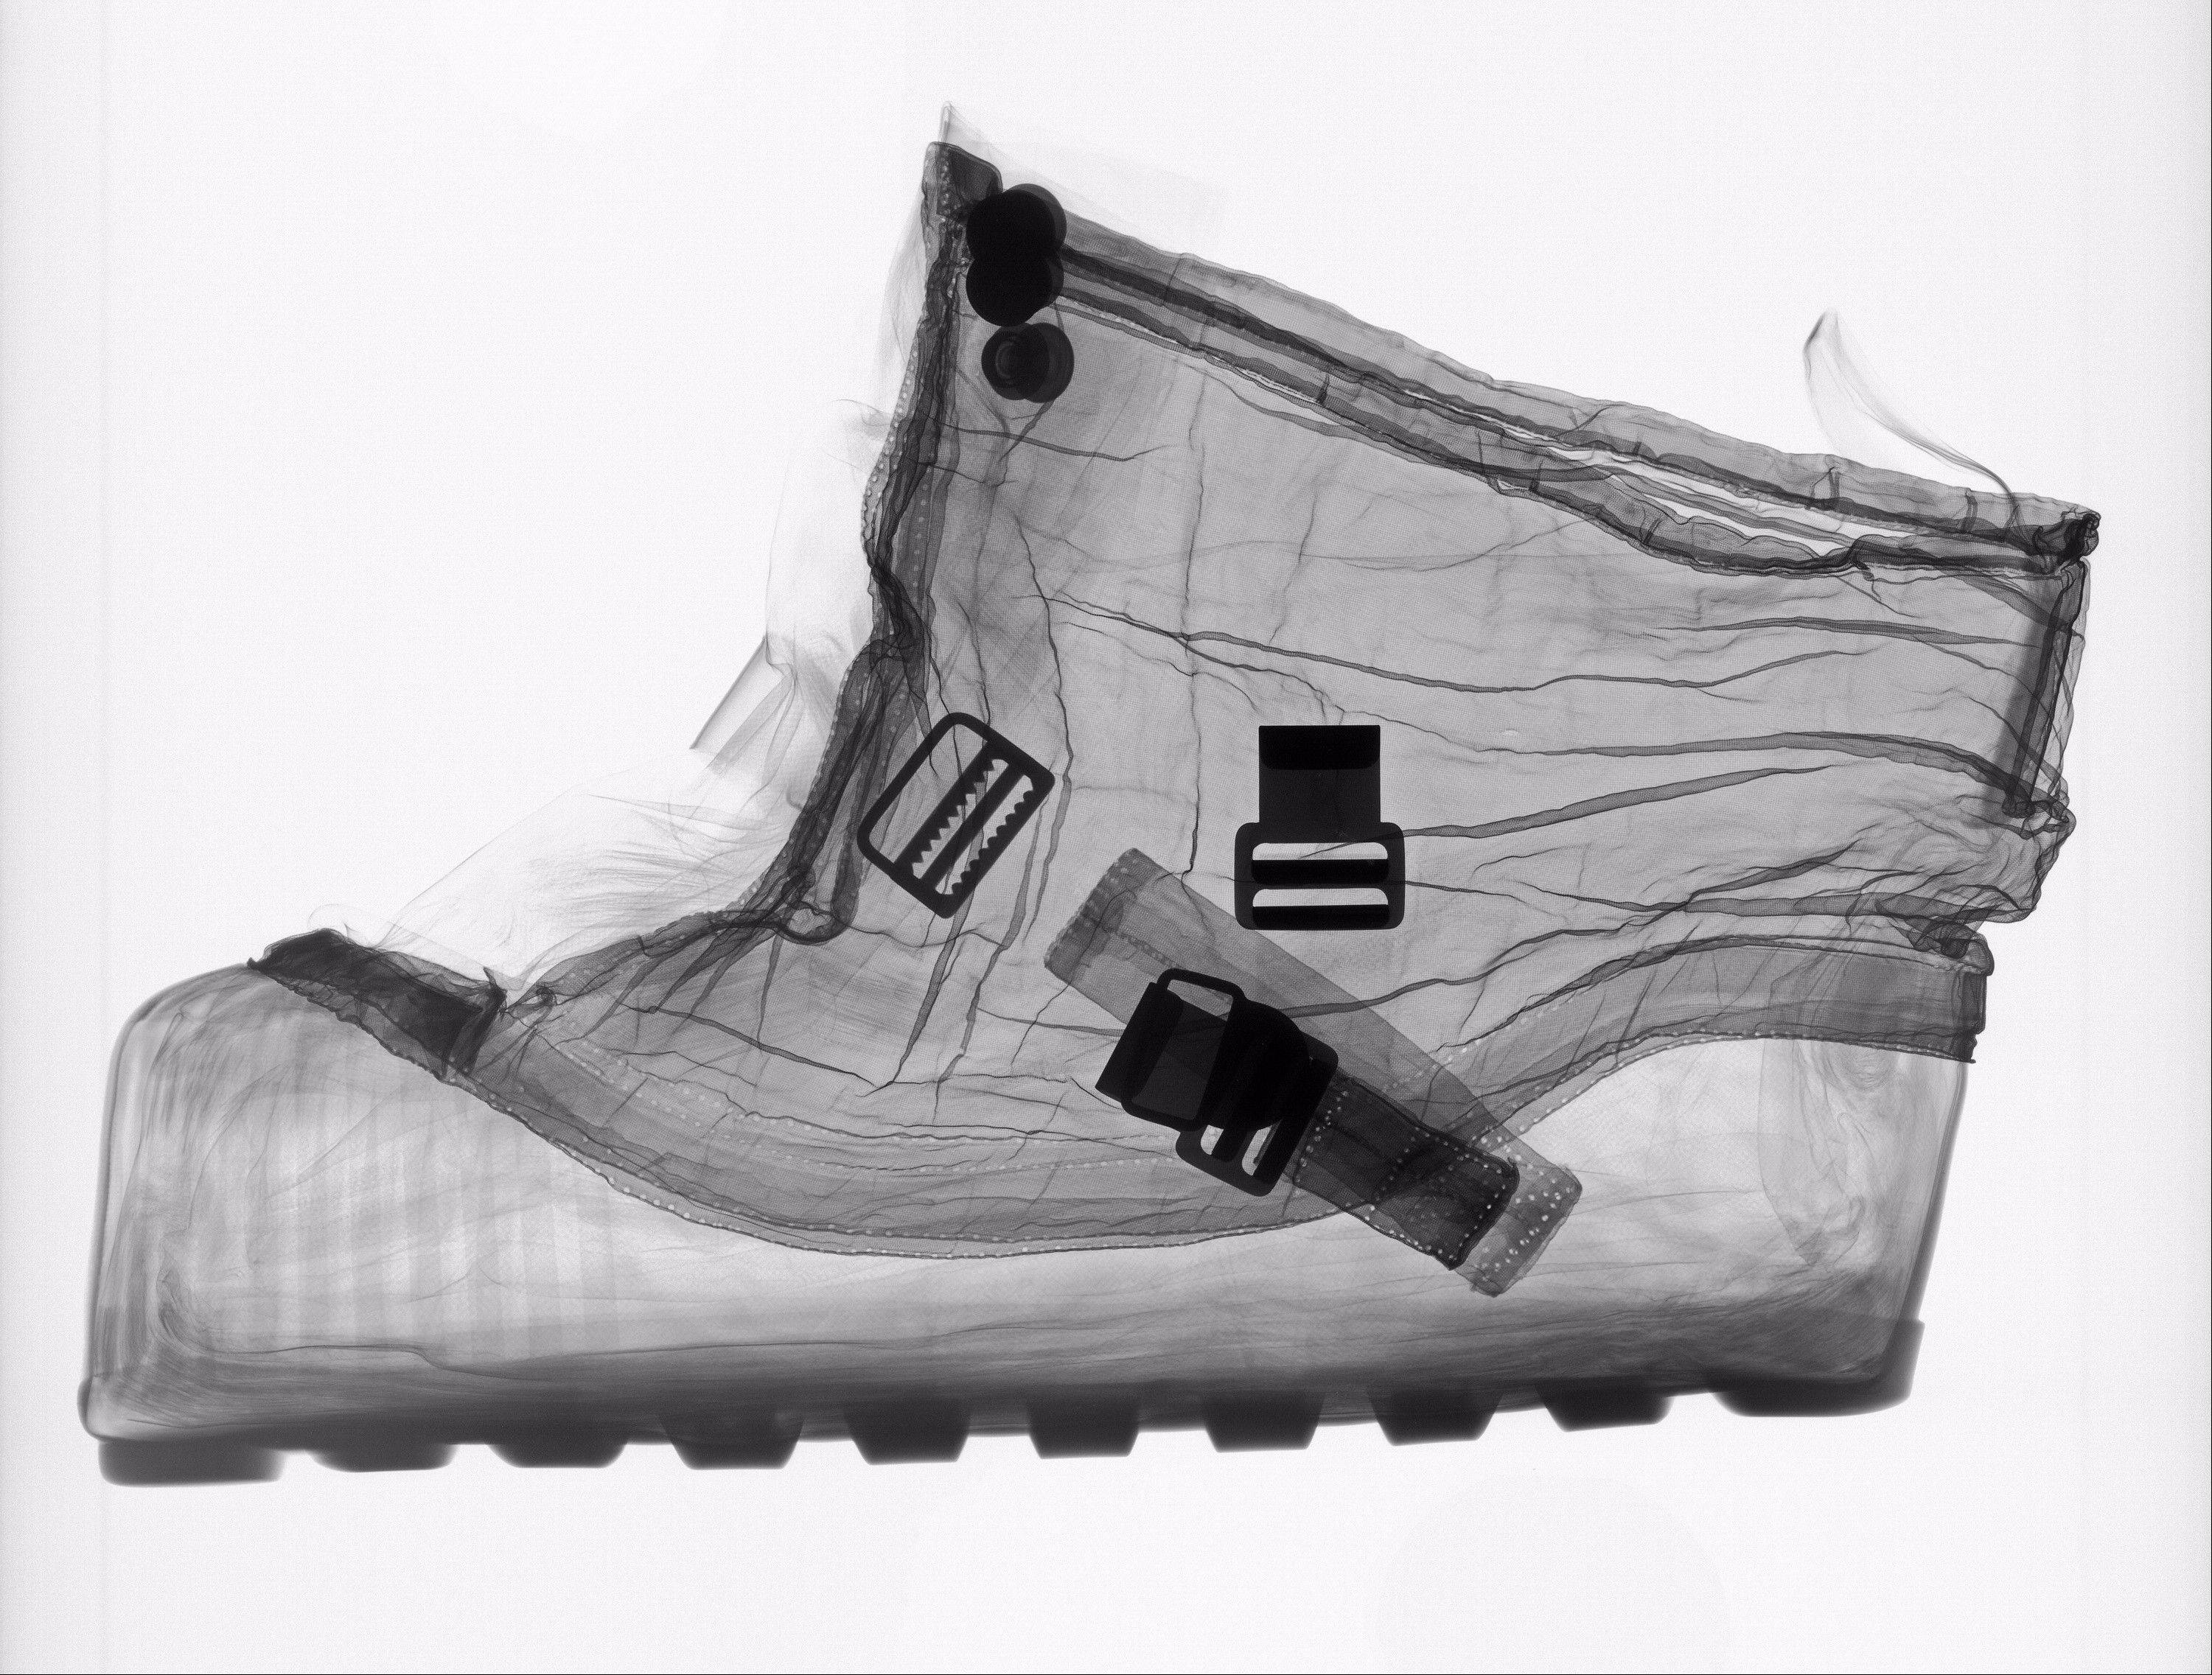 This X-ray of an extravehicular (EV) overshoe that was designed to be worn over the Apollo spacesuit boots while an astronaut was walking on the Moon is part of a new art exhibit at the museum entitled: �Suited for Space,�opening Friday at the Smithsonian National Air and Space Museum.